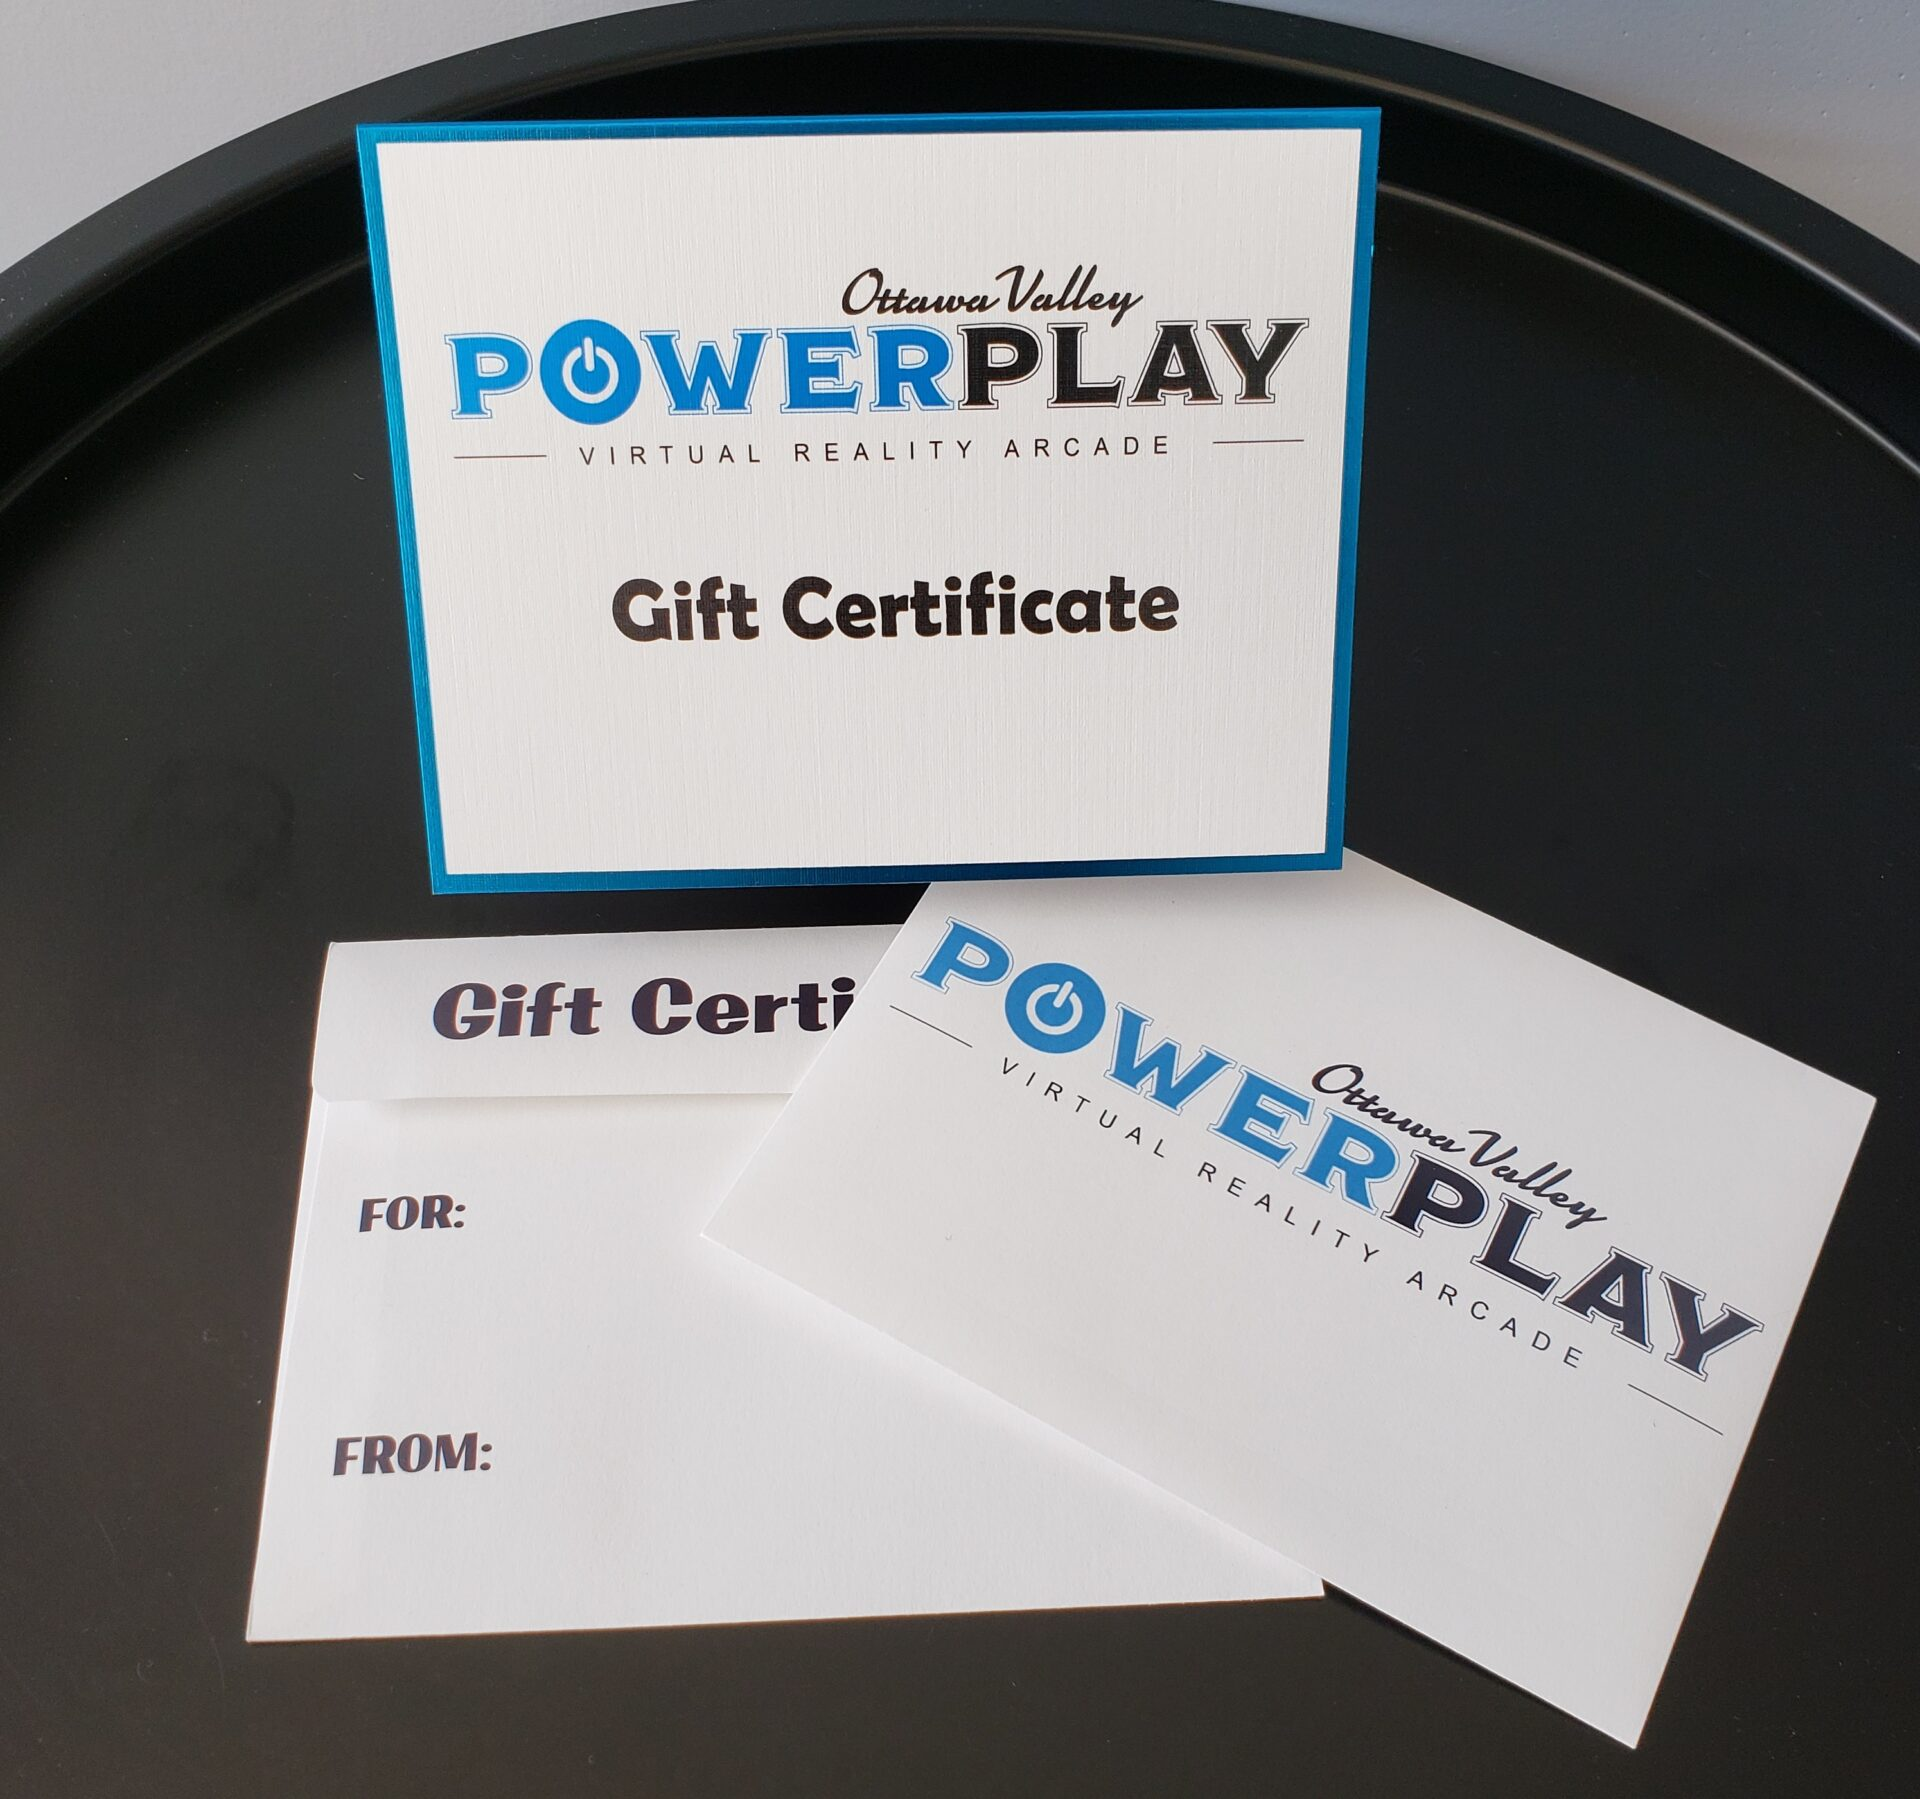 OV Power Play Gift Card